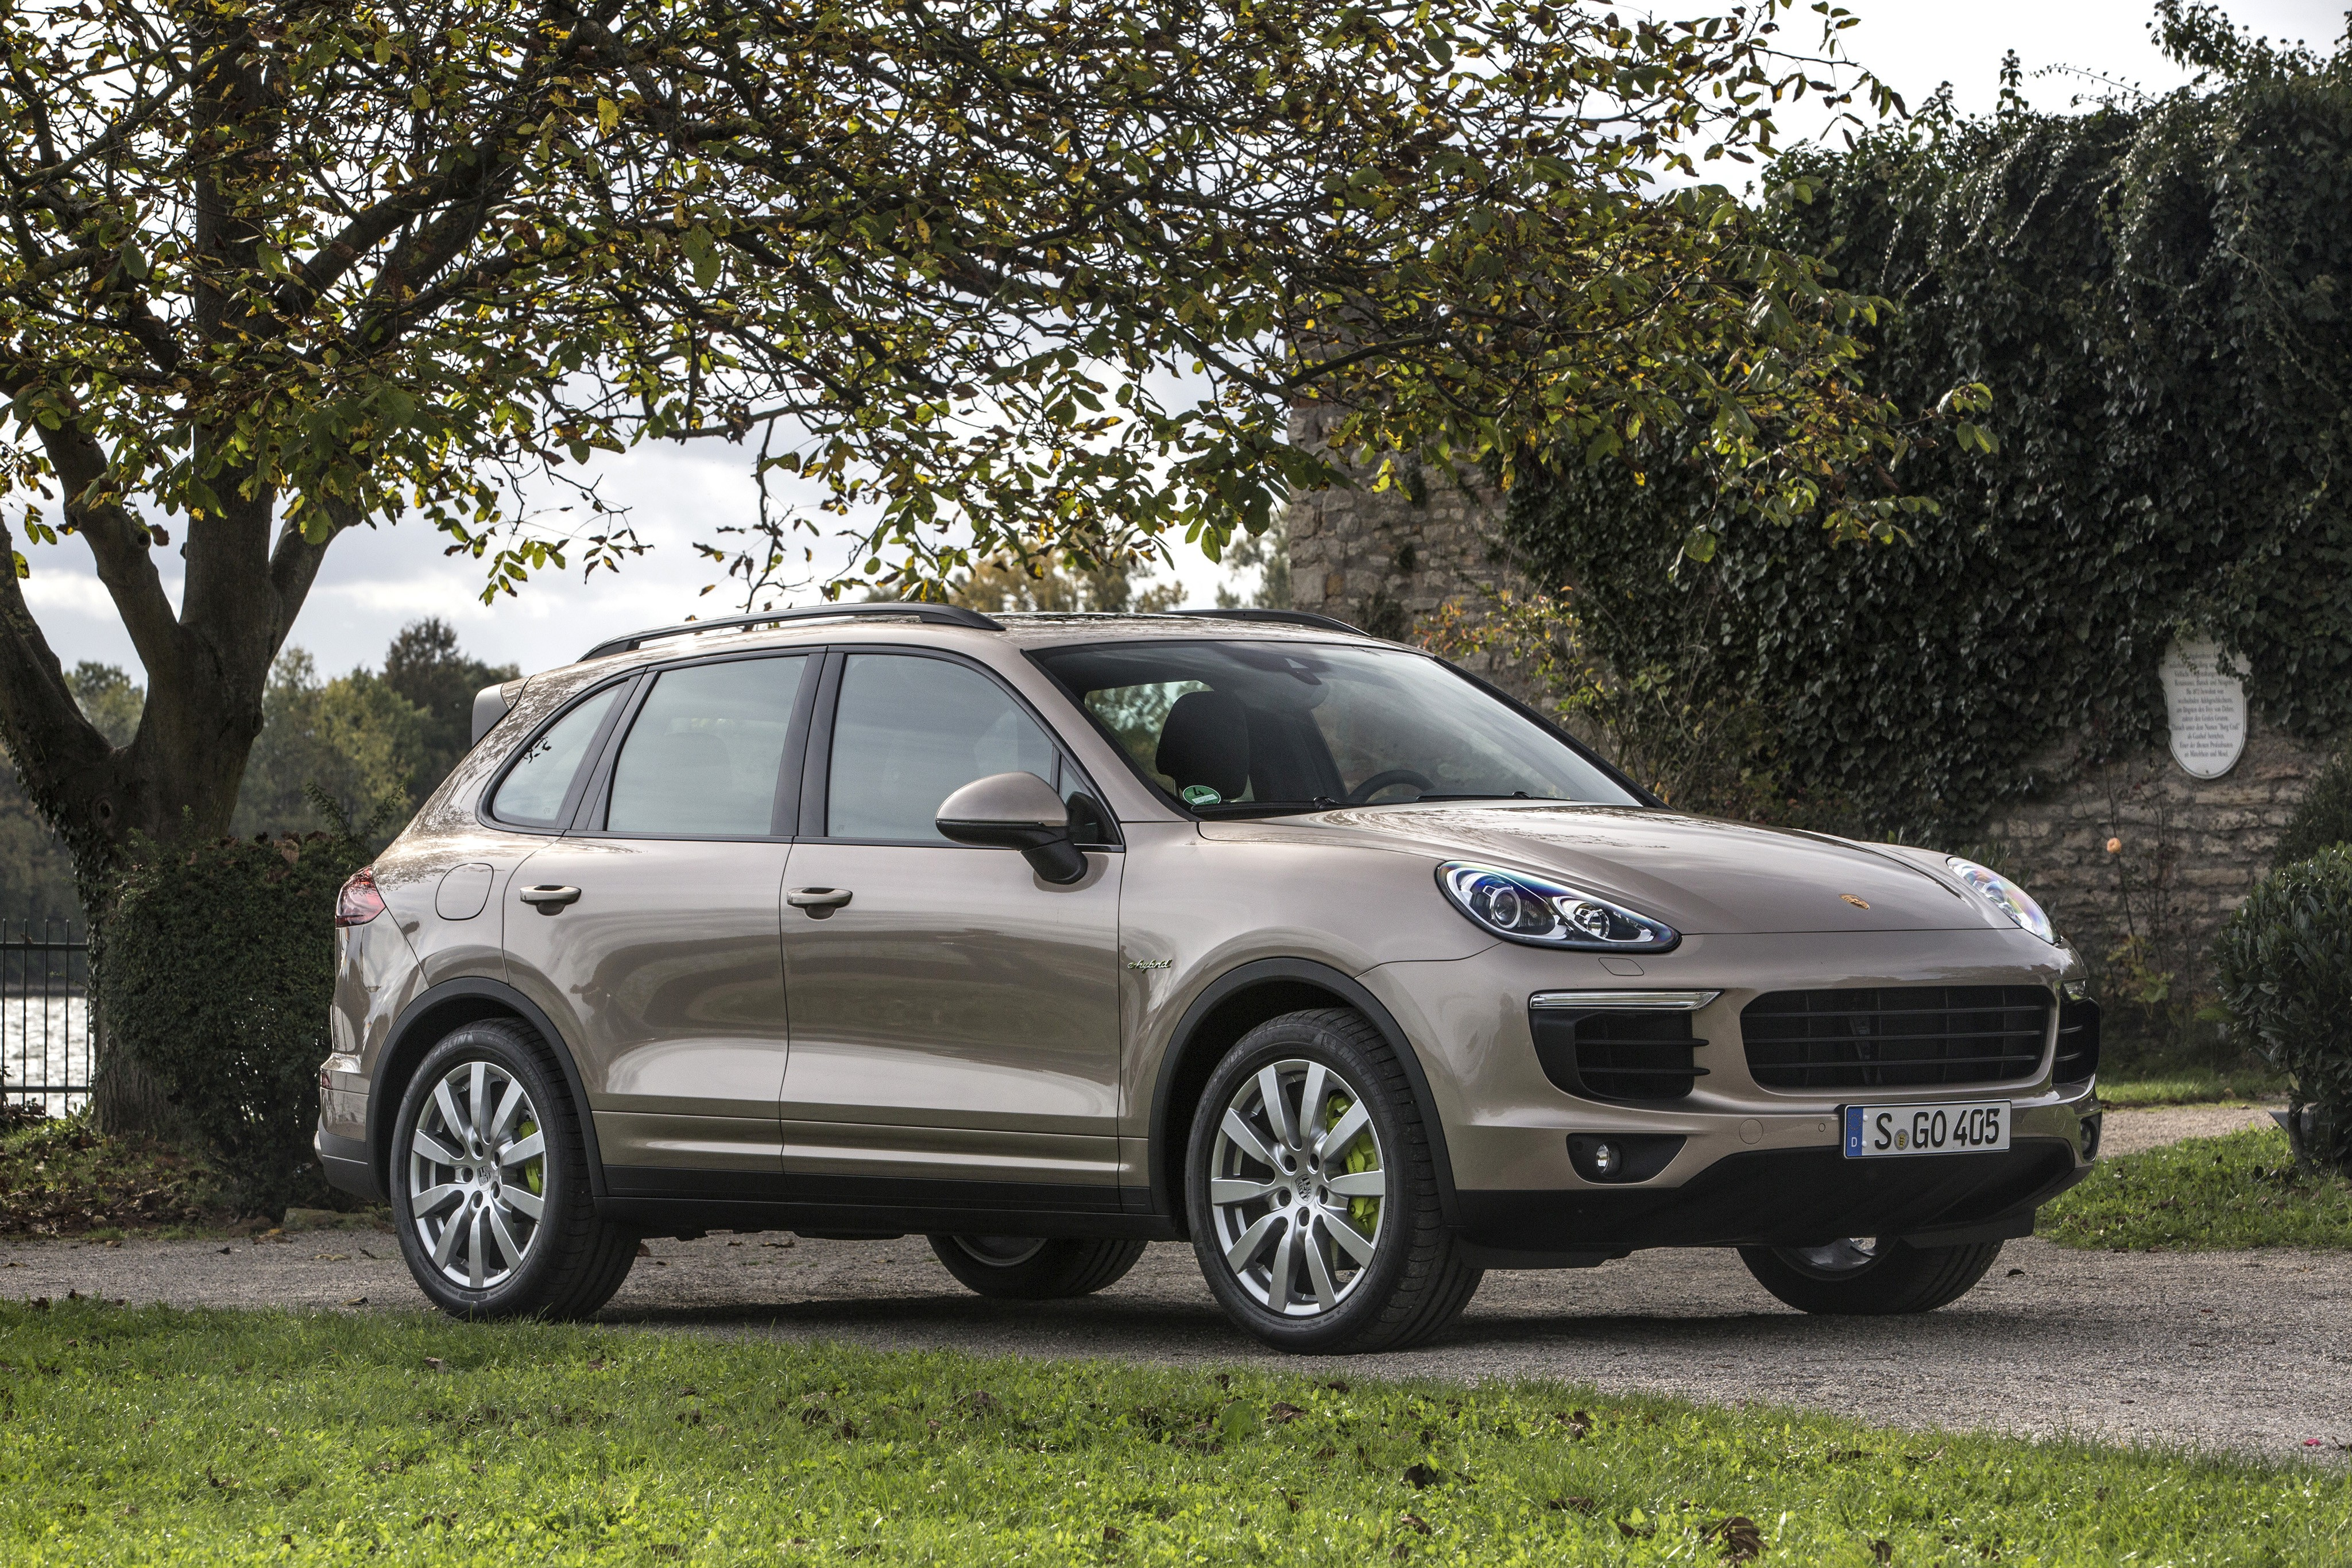 porsche cayenne s e hybrid specs 2014 2015 2016 2017 2018 autoevolution. Black Bedroom Furniture Sets. Home Design Ideas